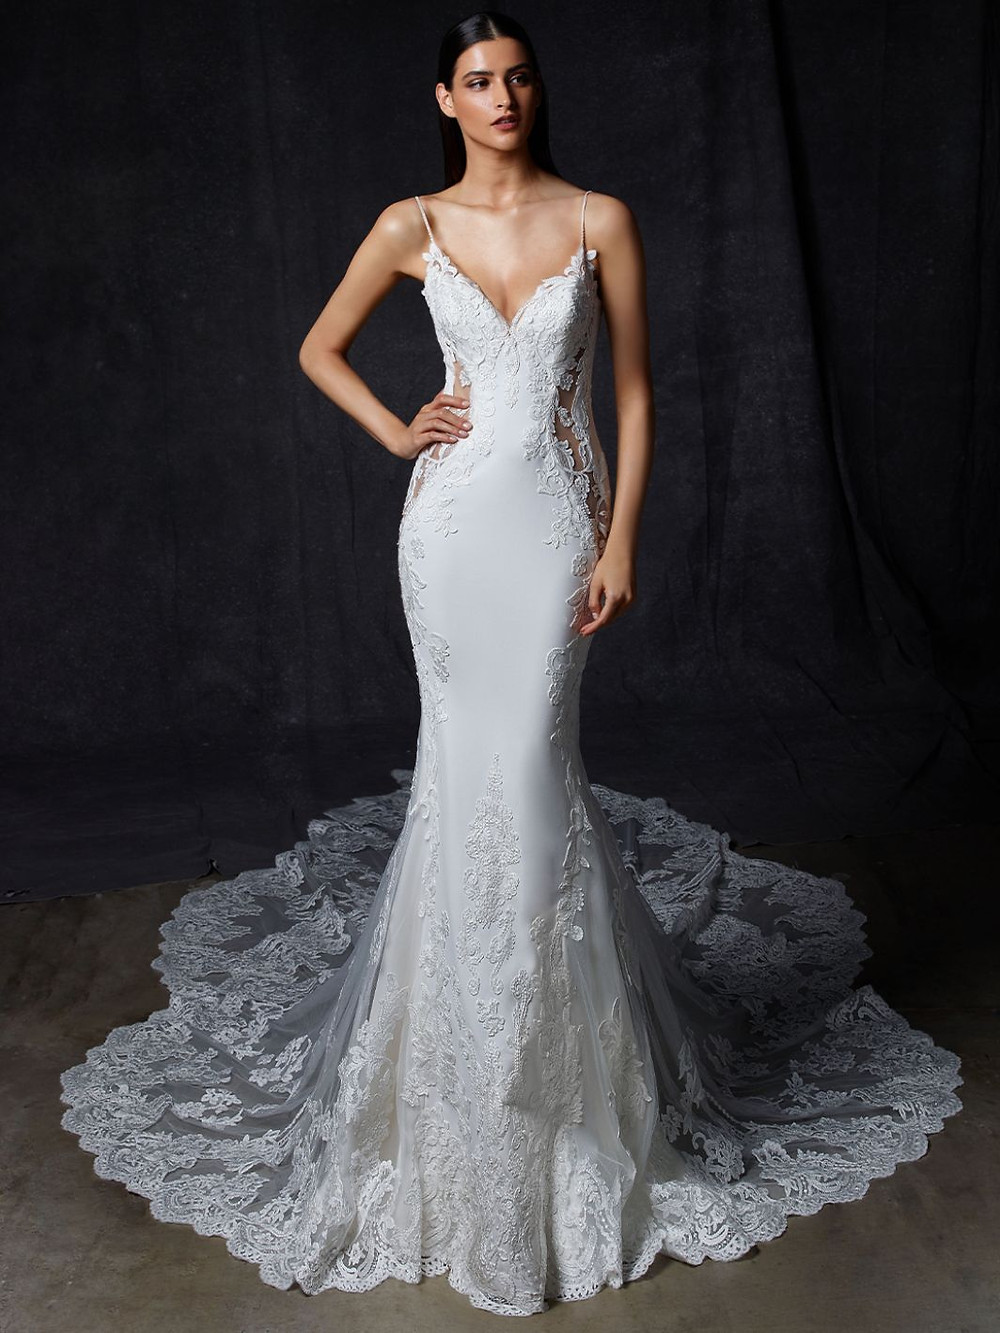 An Enzoani silk and lace mermaid wedding dress with thin straps and a long veil